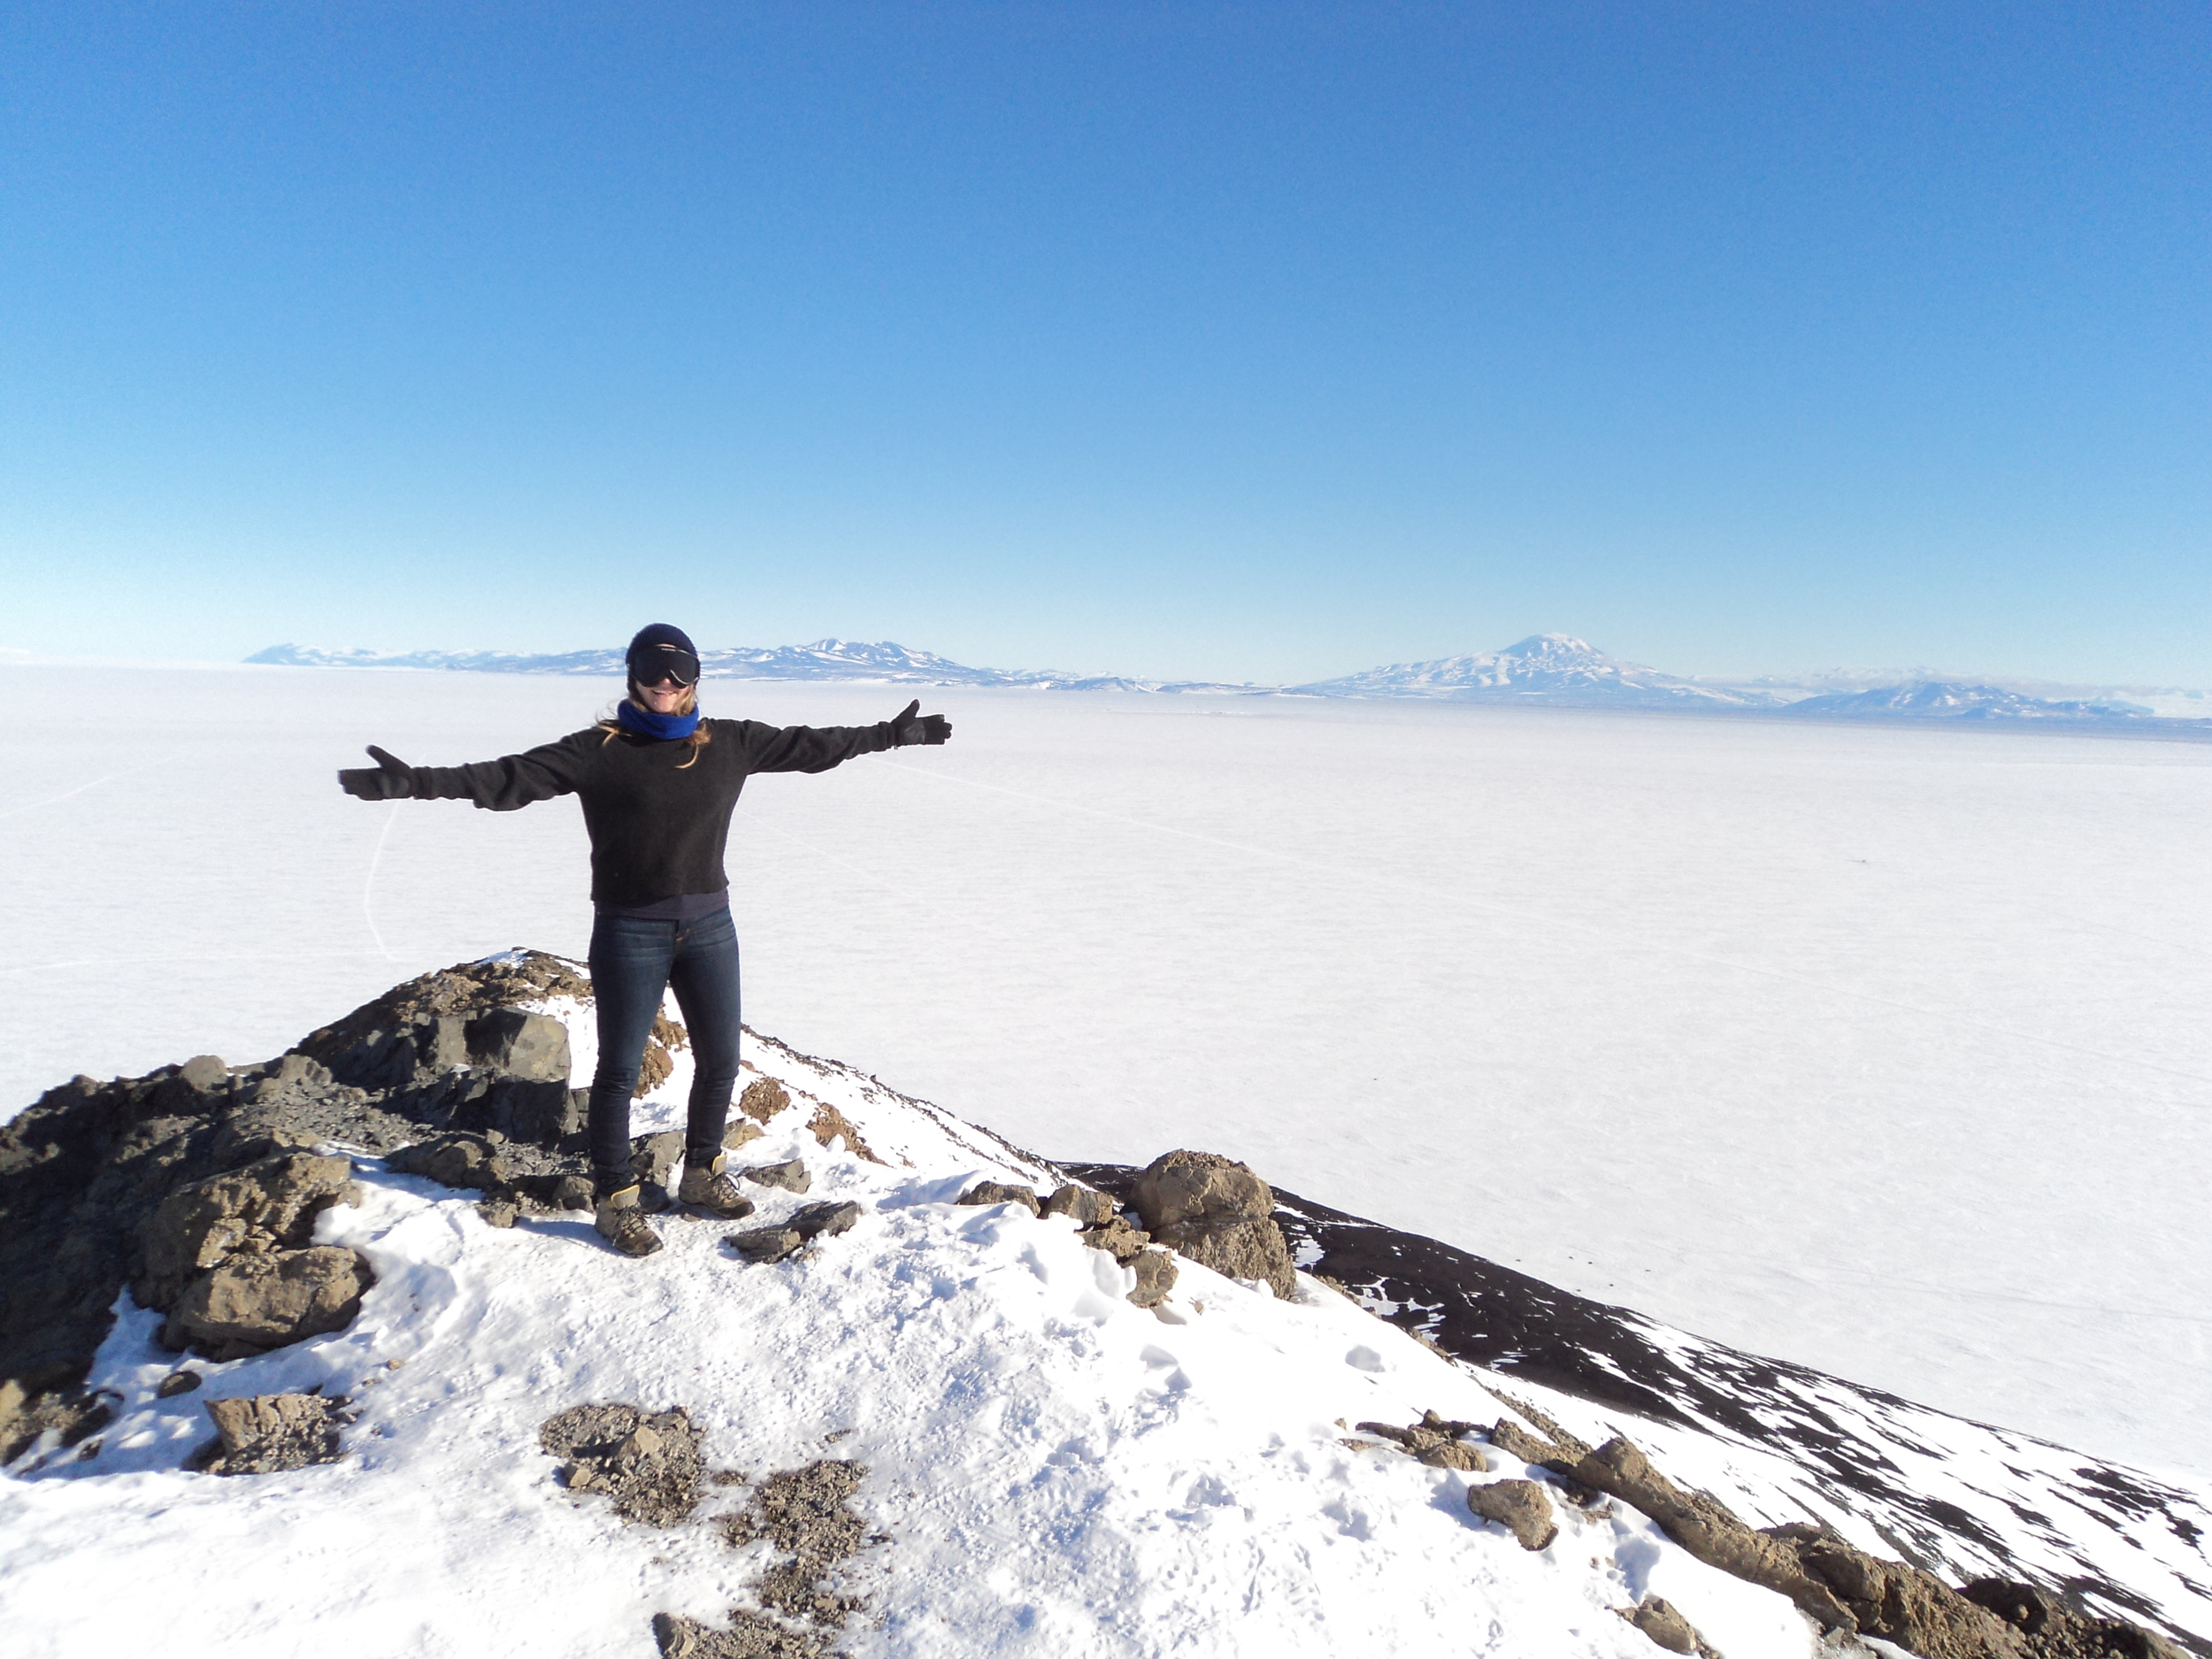 Me in front of the frozen Ross Sea (in a few months that will be all water!)